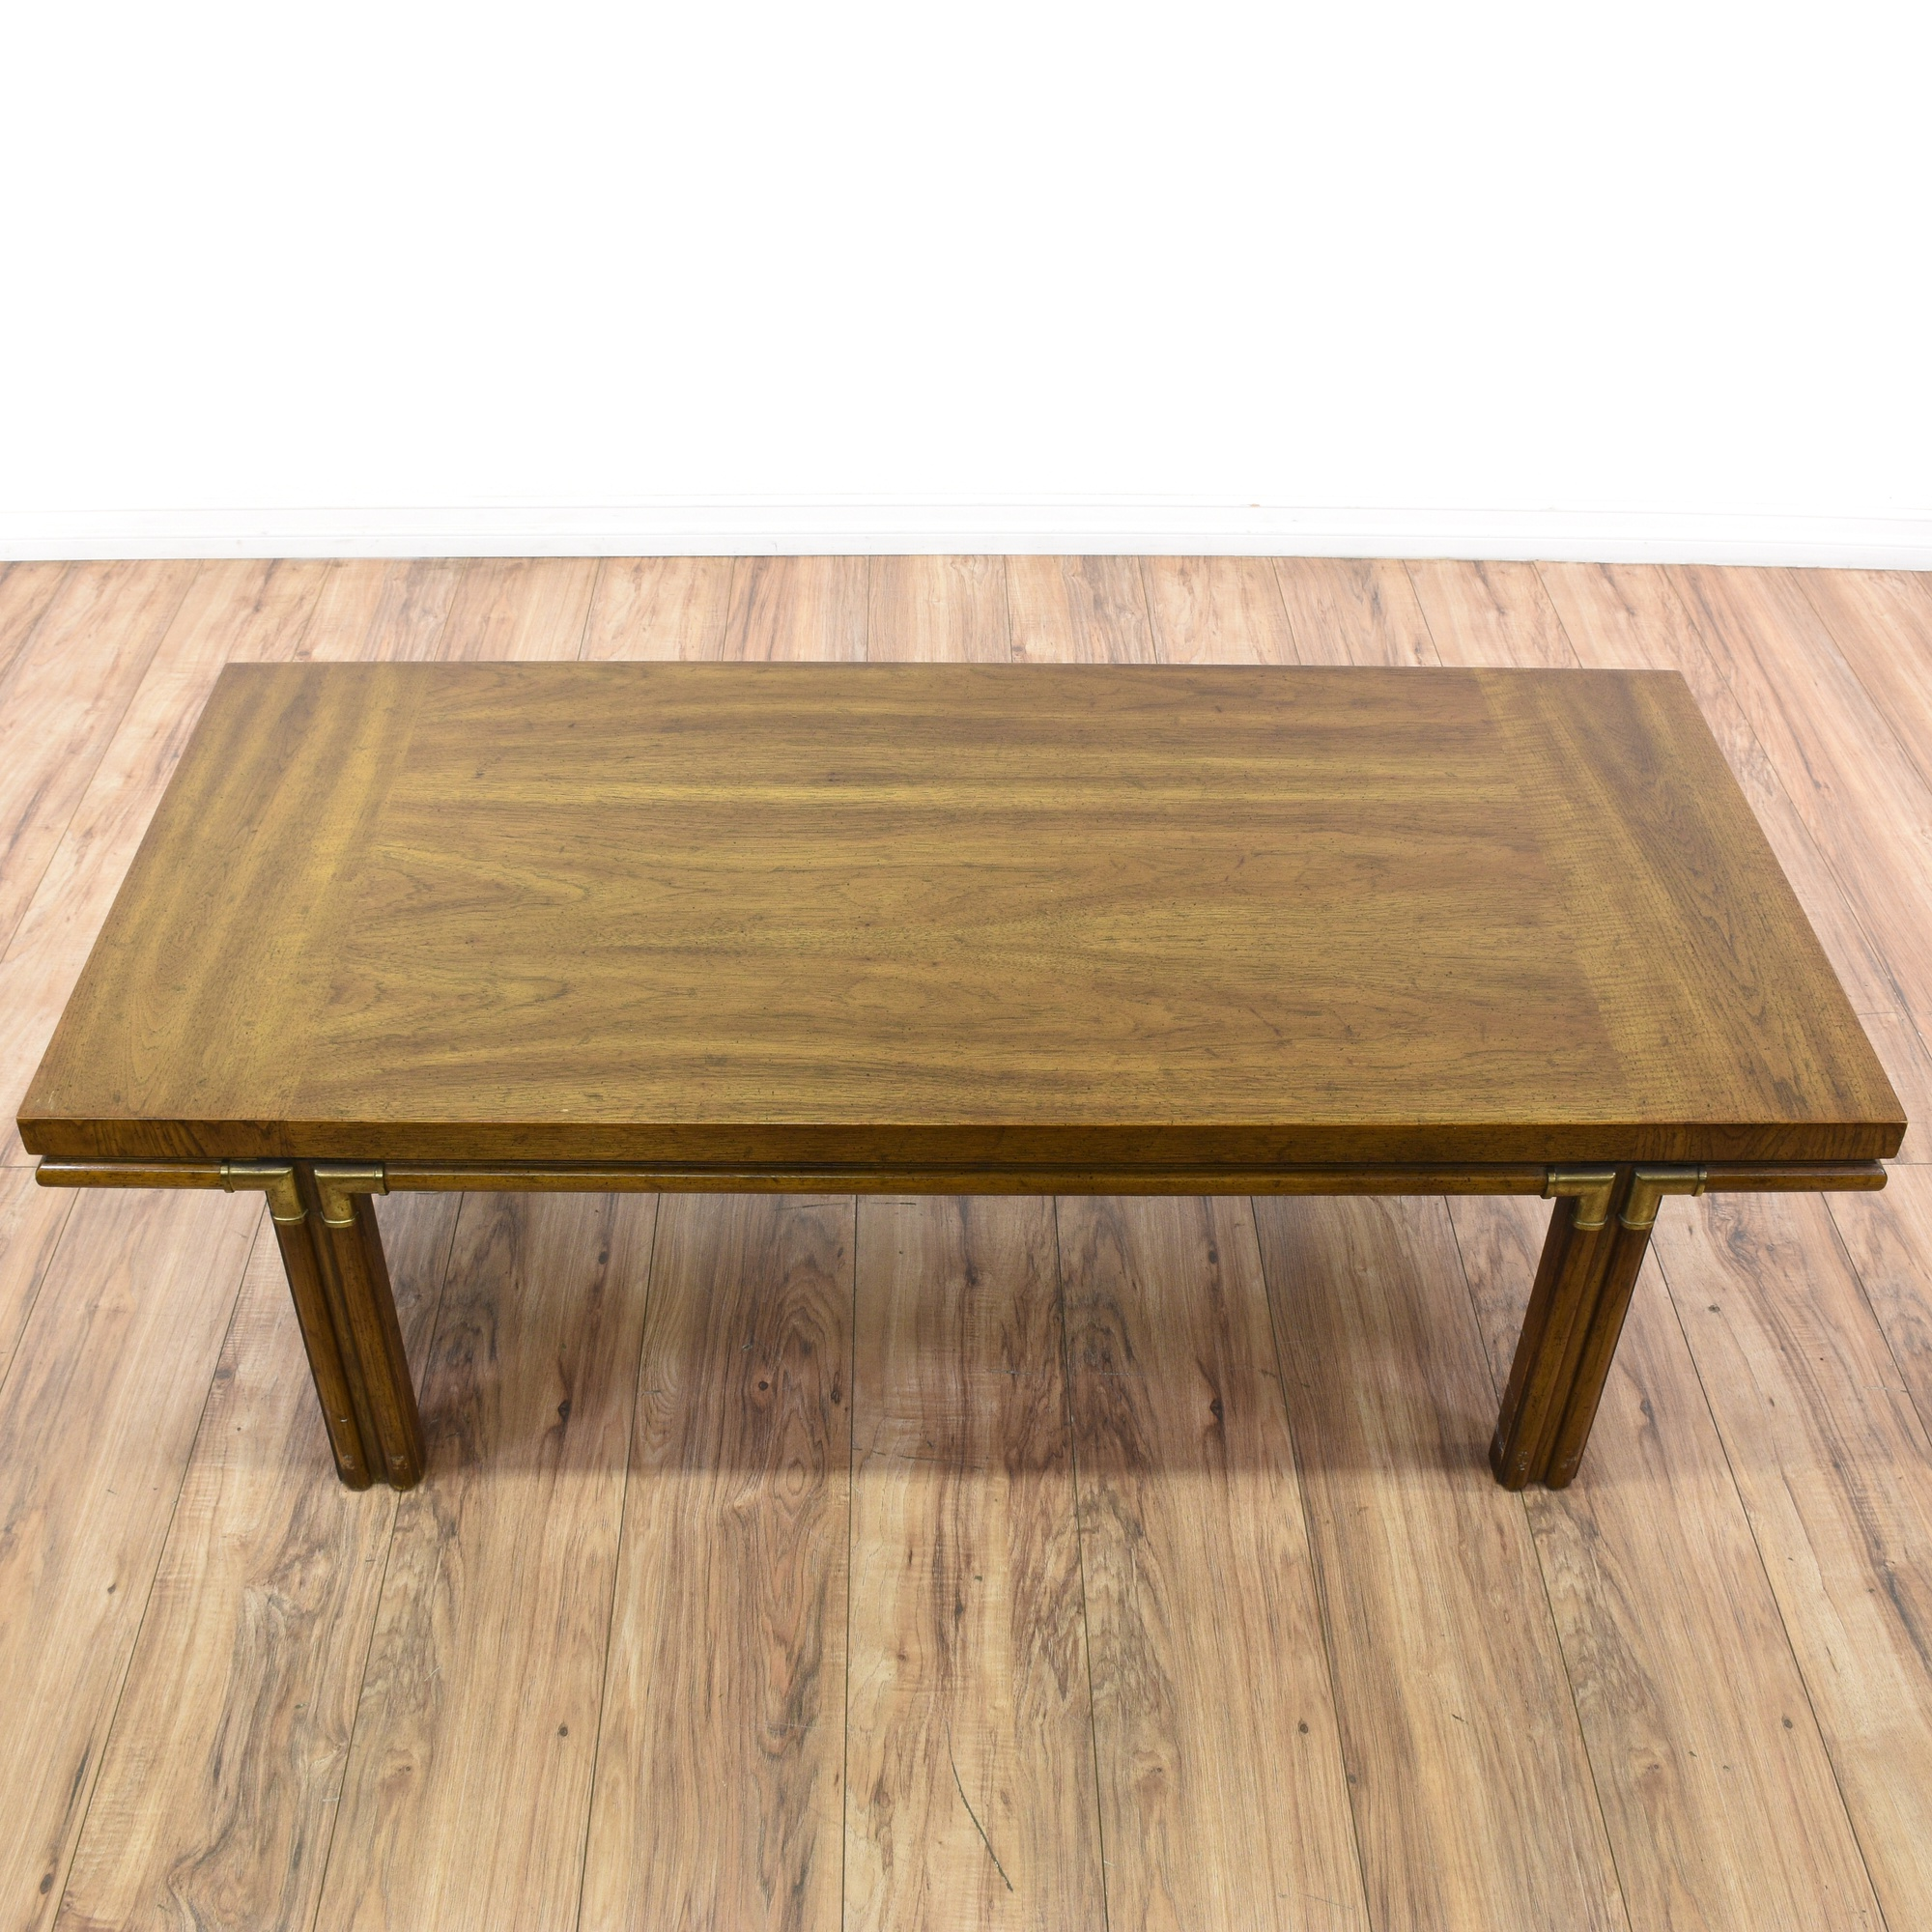 Quot Drexel Heritage Accolade Quot Campaign Coffee Table